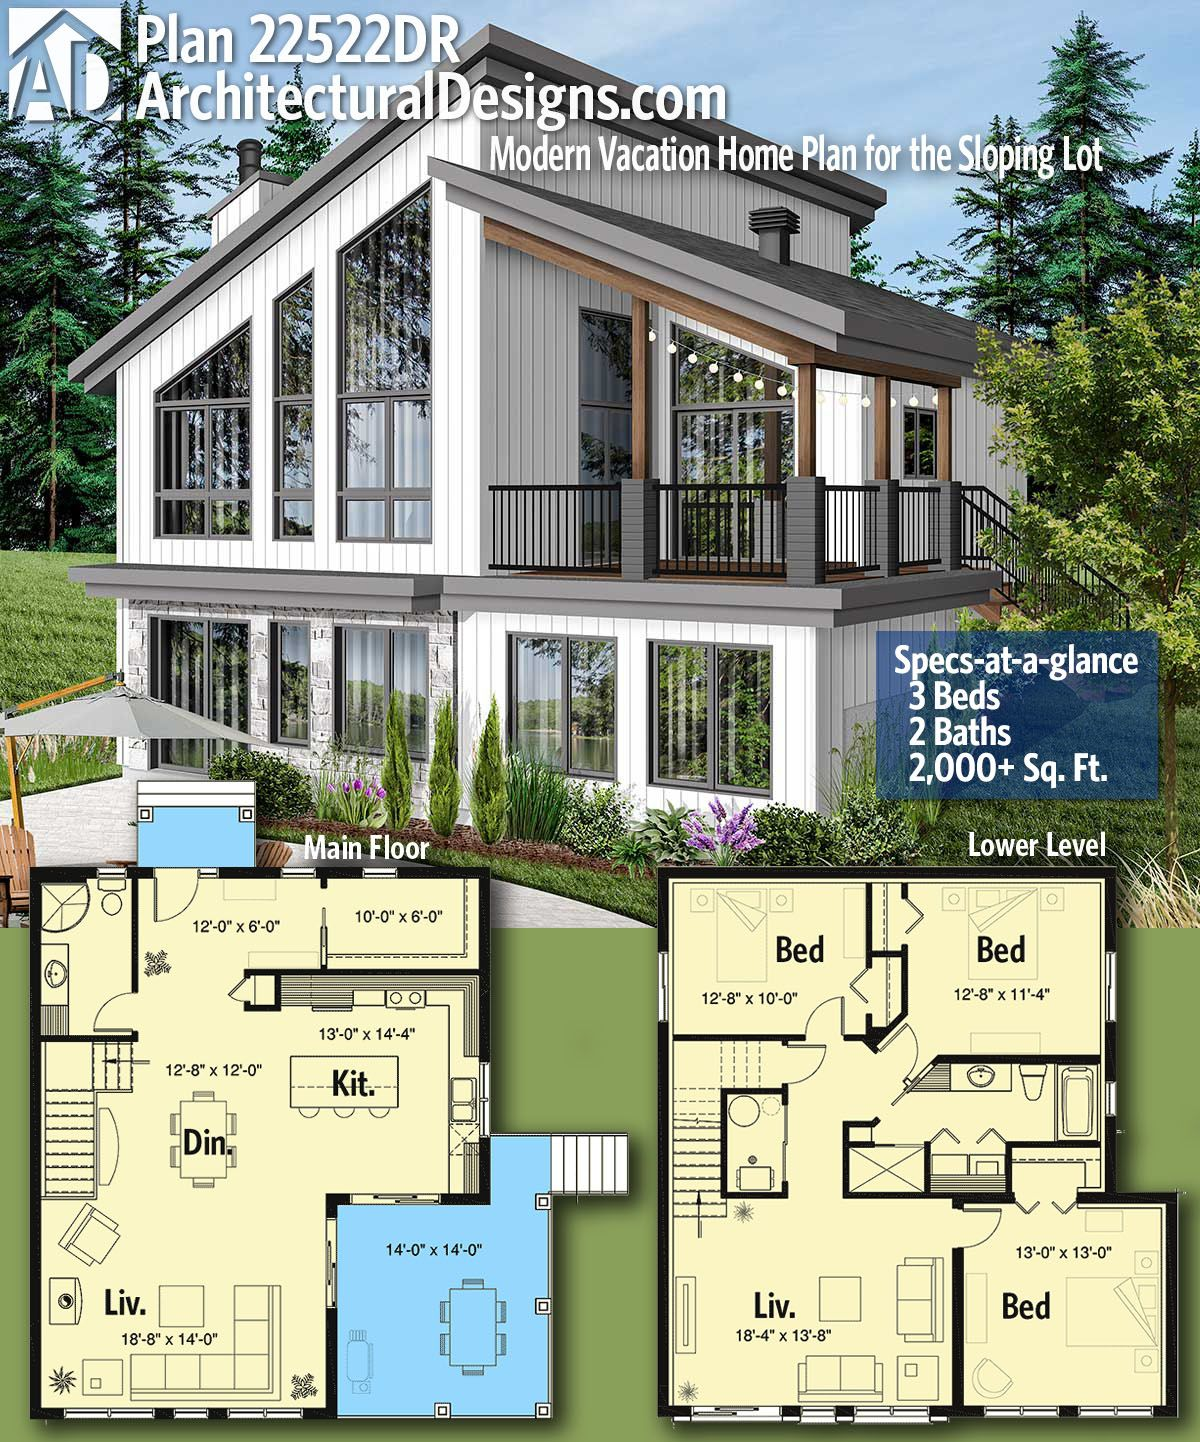 Plan 22522dr Modern Vacation Home Plan For The Sloping Lot House Layout Plans Architectural Design House Plans Modern House Plans